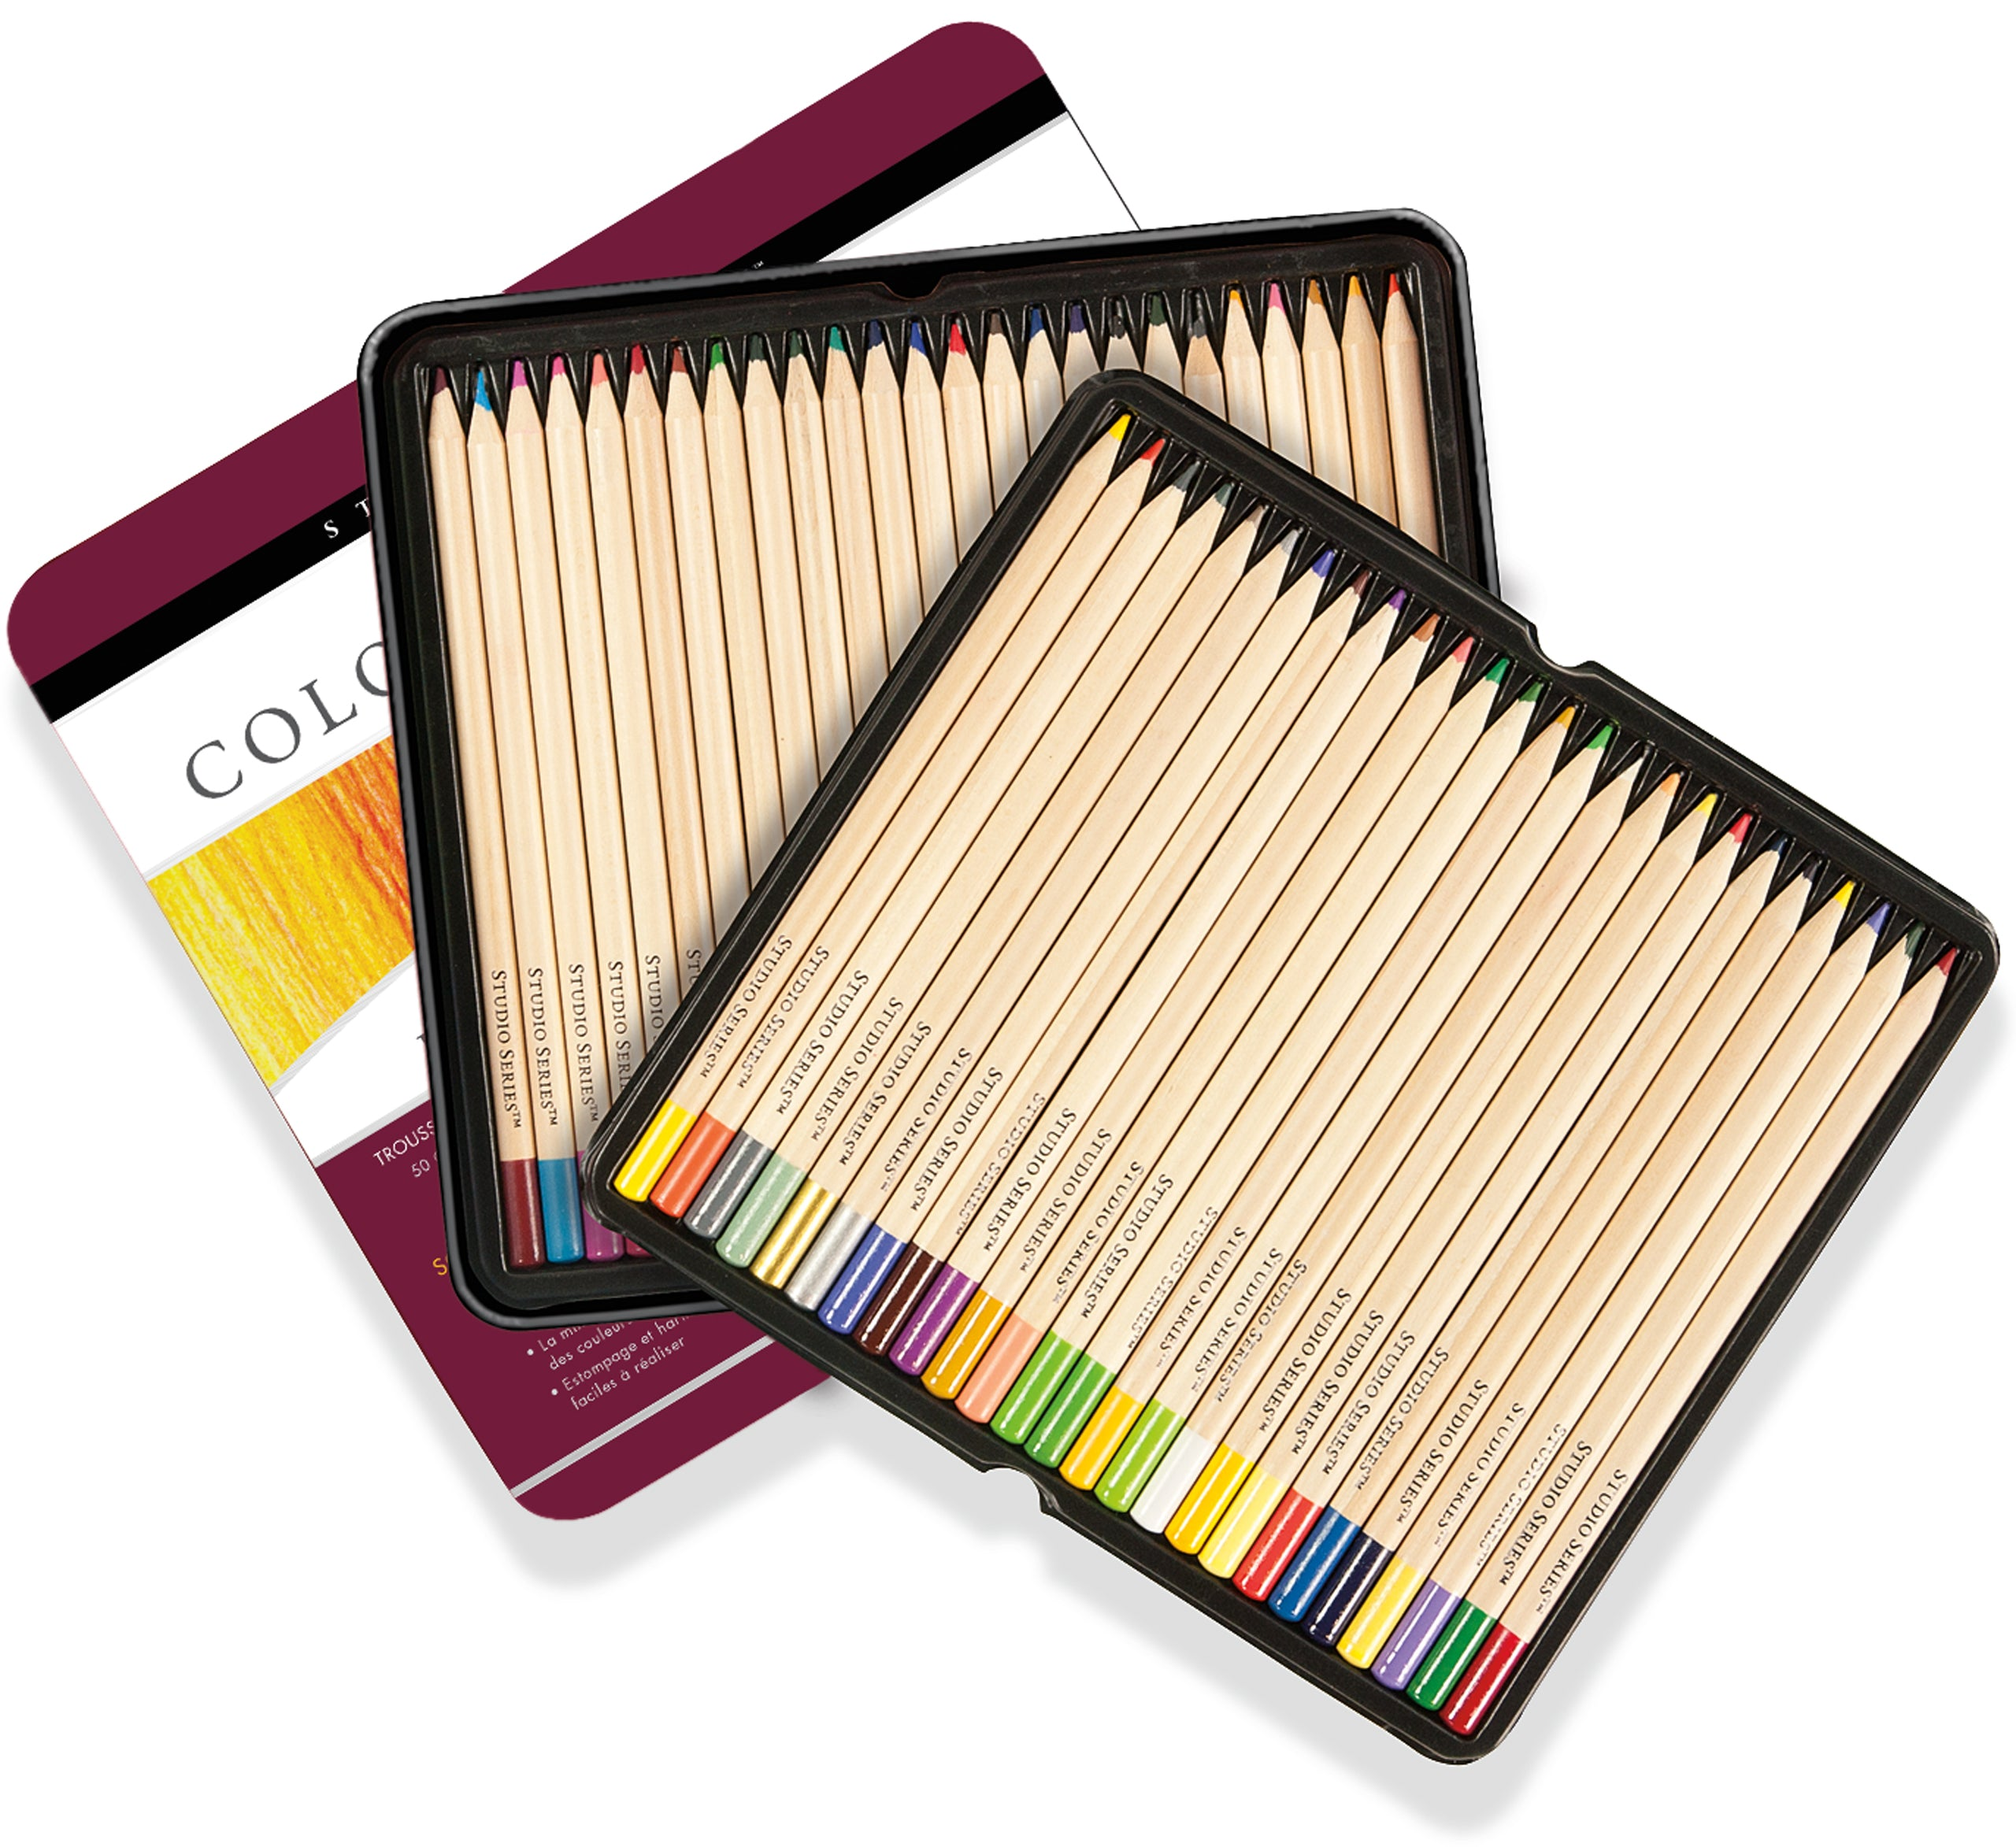 Studio Series - Deluxe Colored Pencil Set